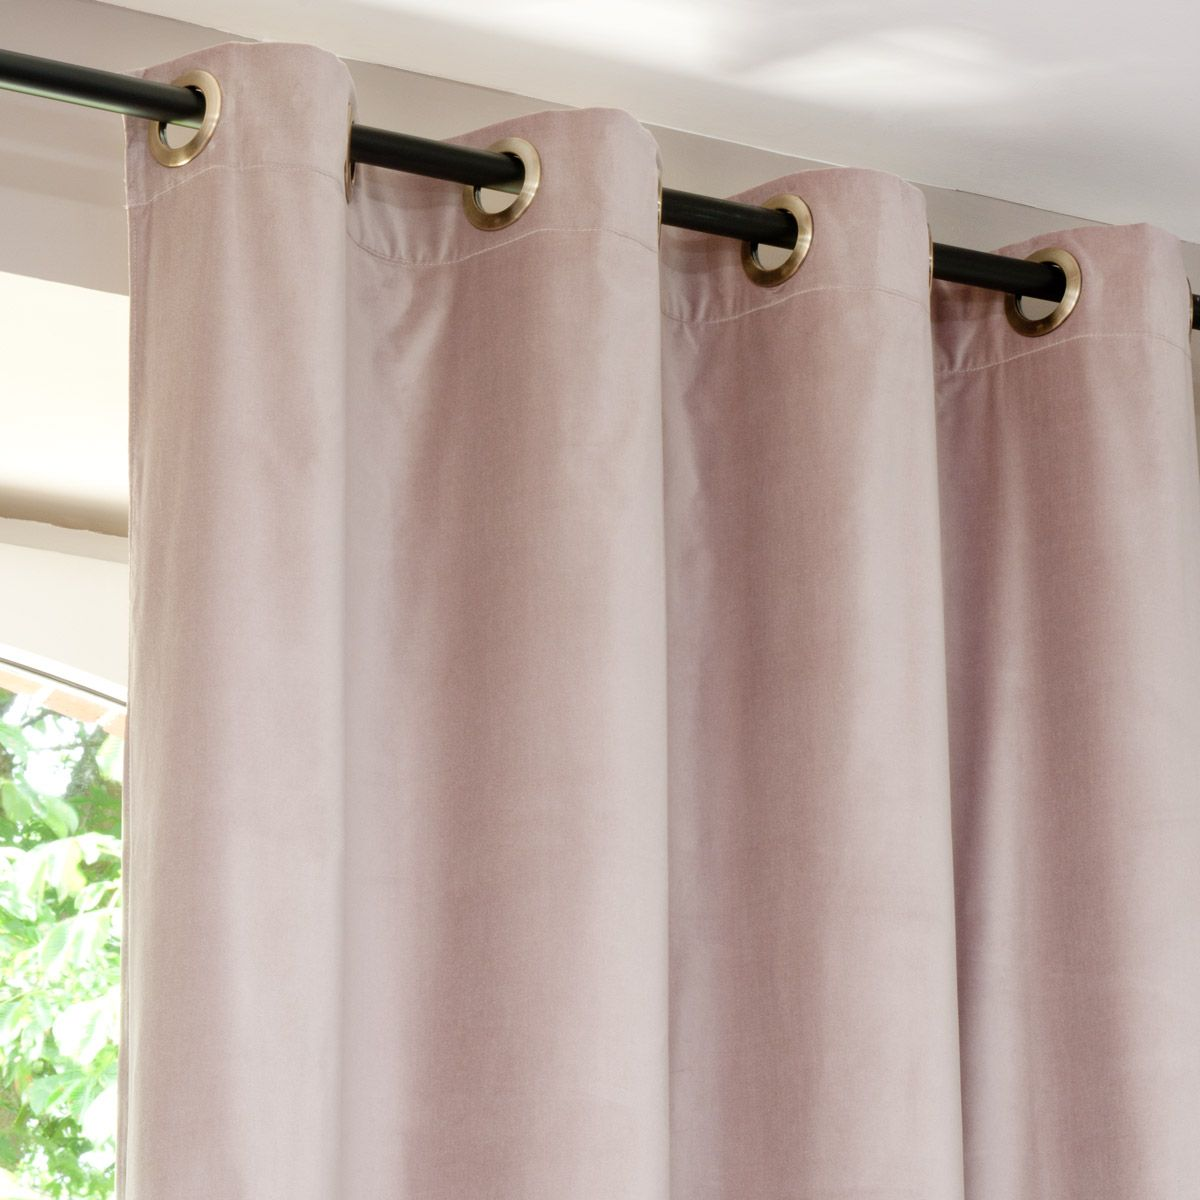 Gardinen Altrosa Textil Textiles Curtains Drapes Curtains Und Velvet Curtains